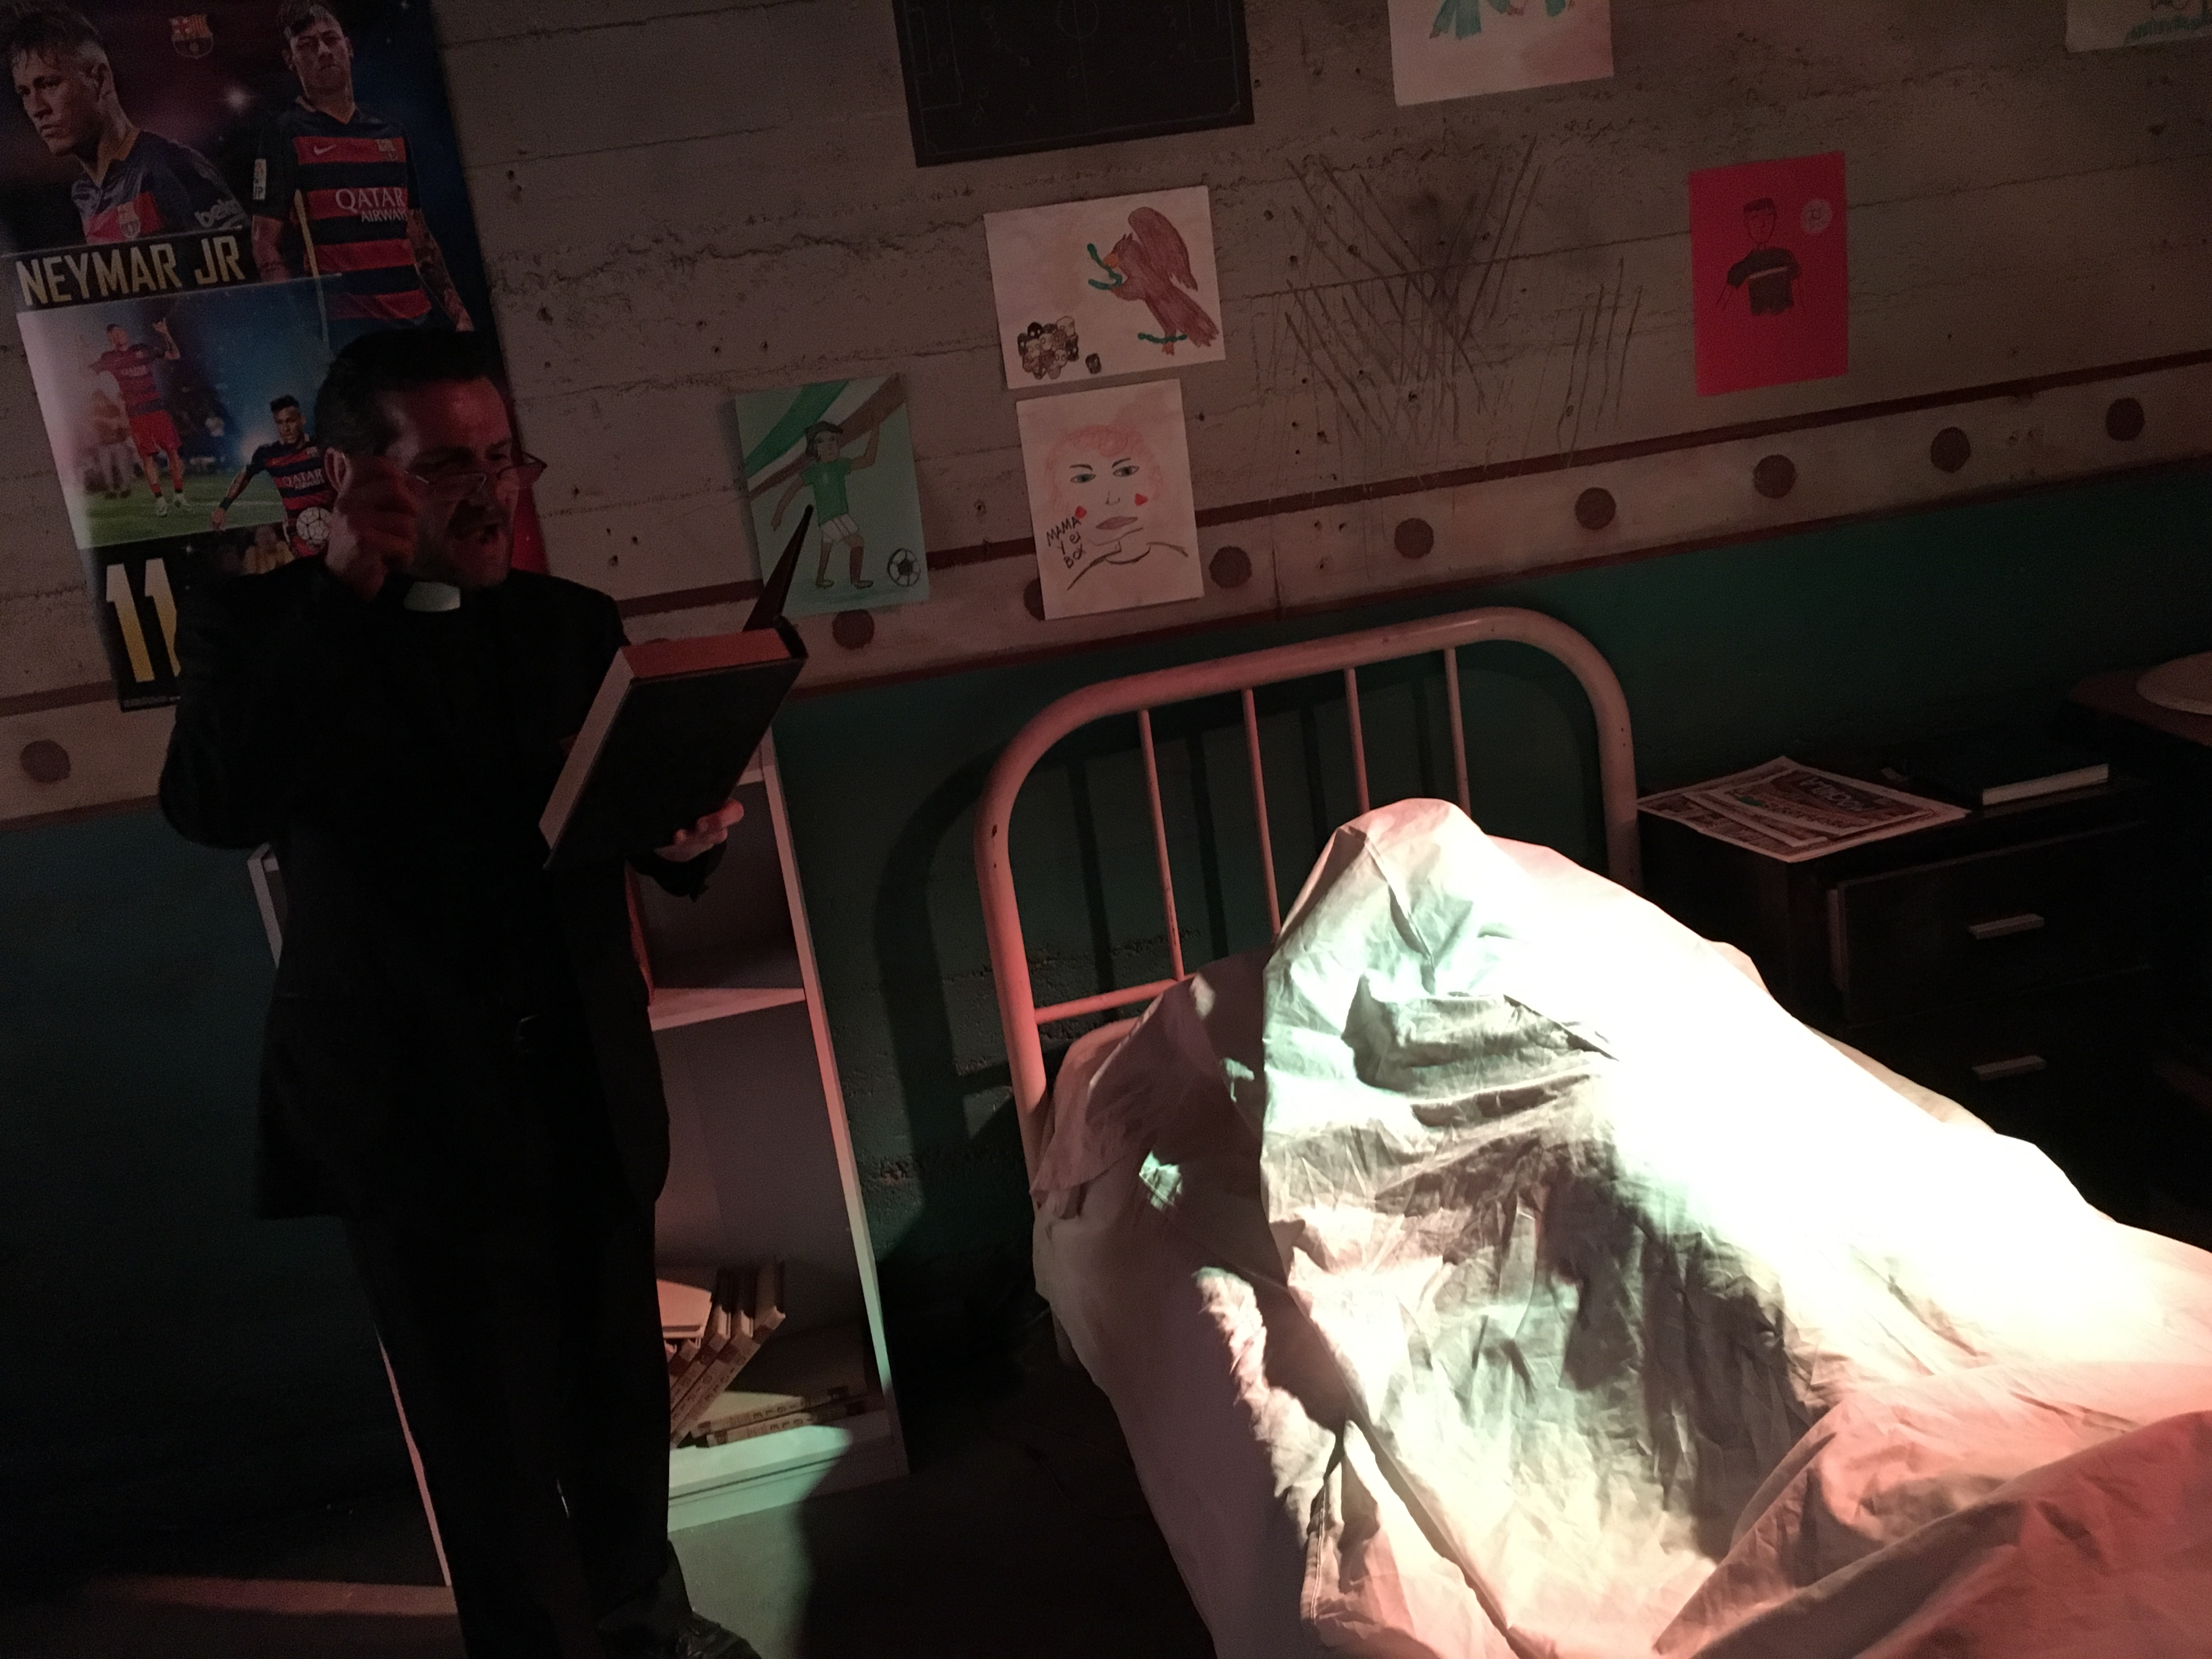 Possess yourself with the exorcist room at escape hotel horrorbuzz img8705 solutioingenieria Images